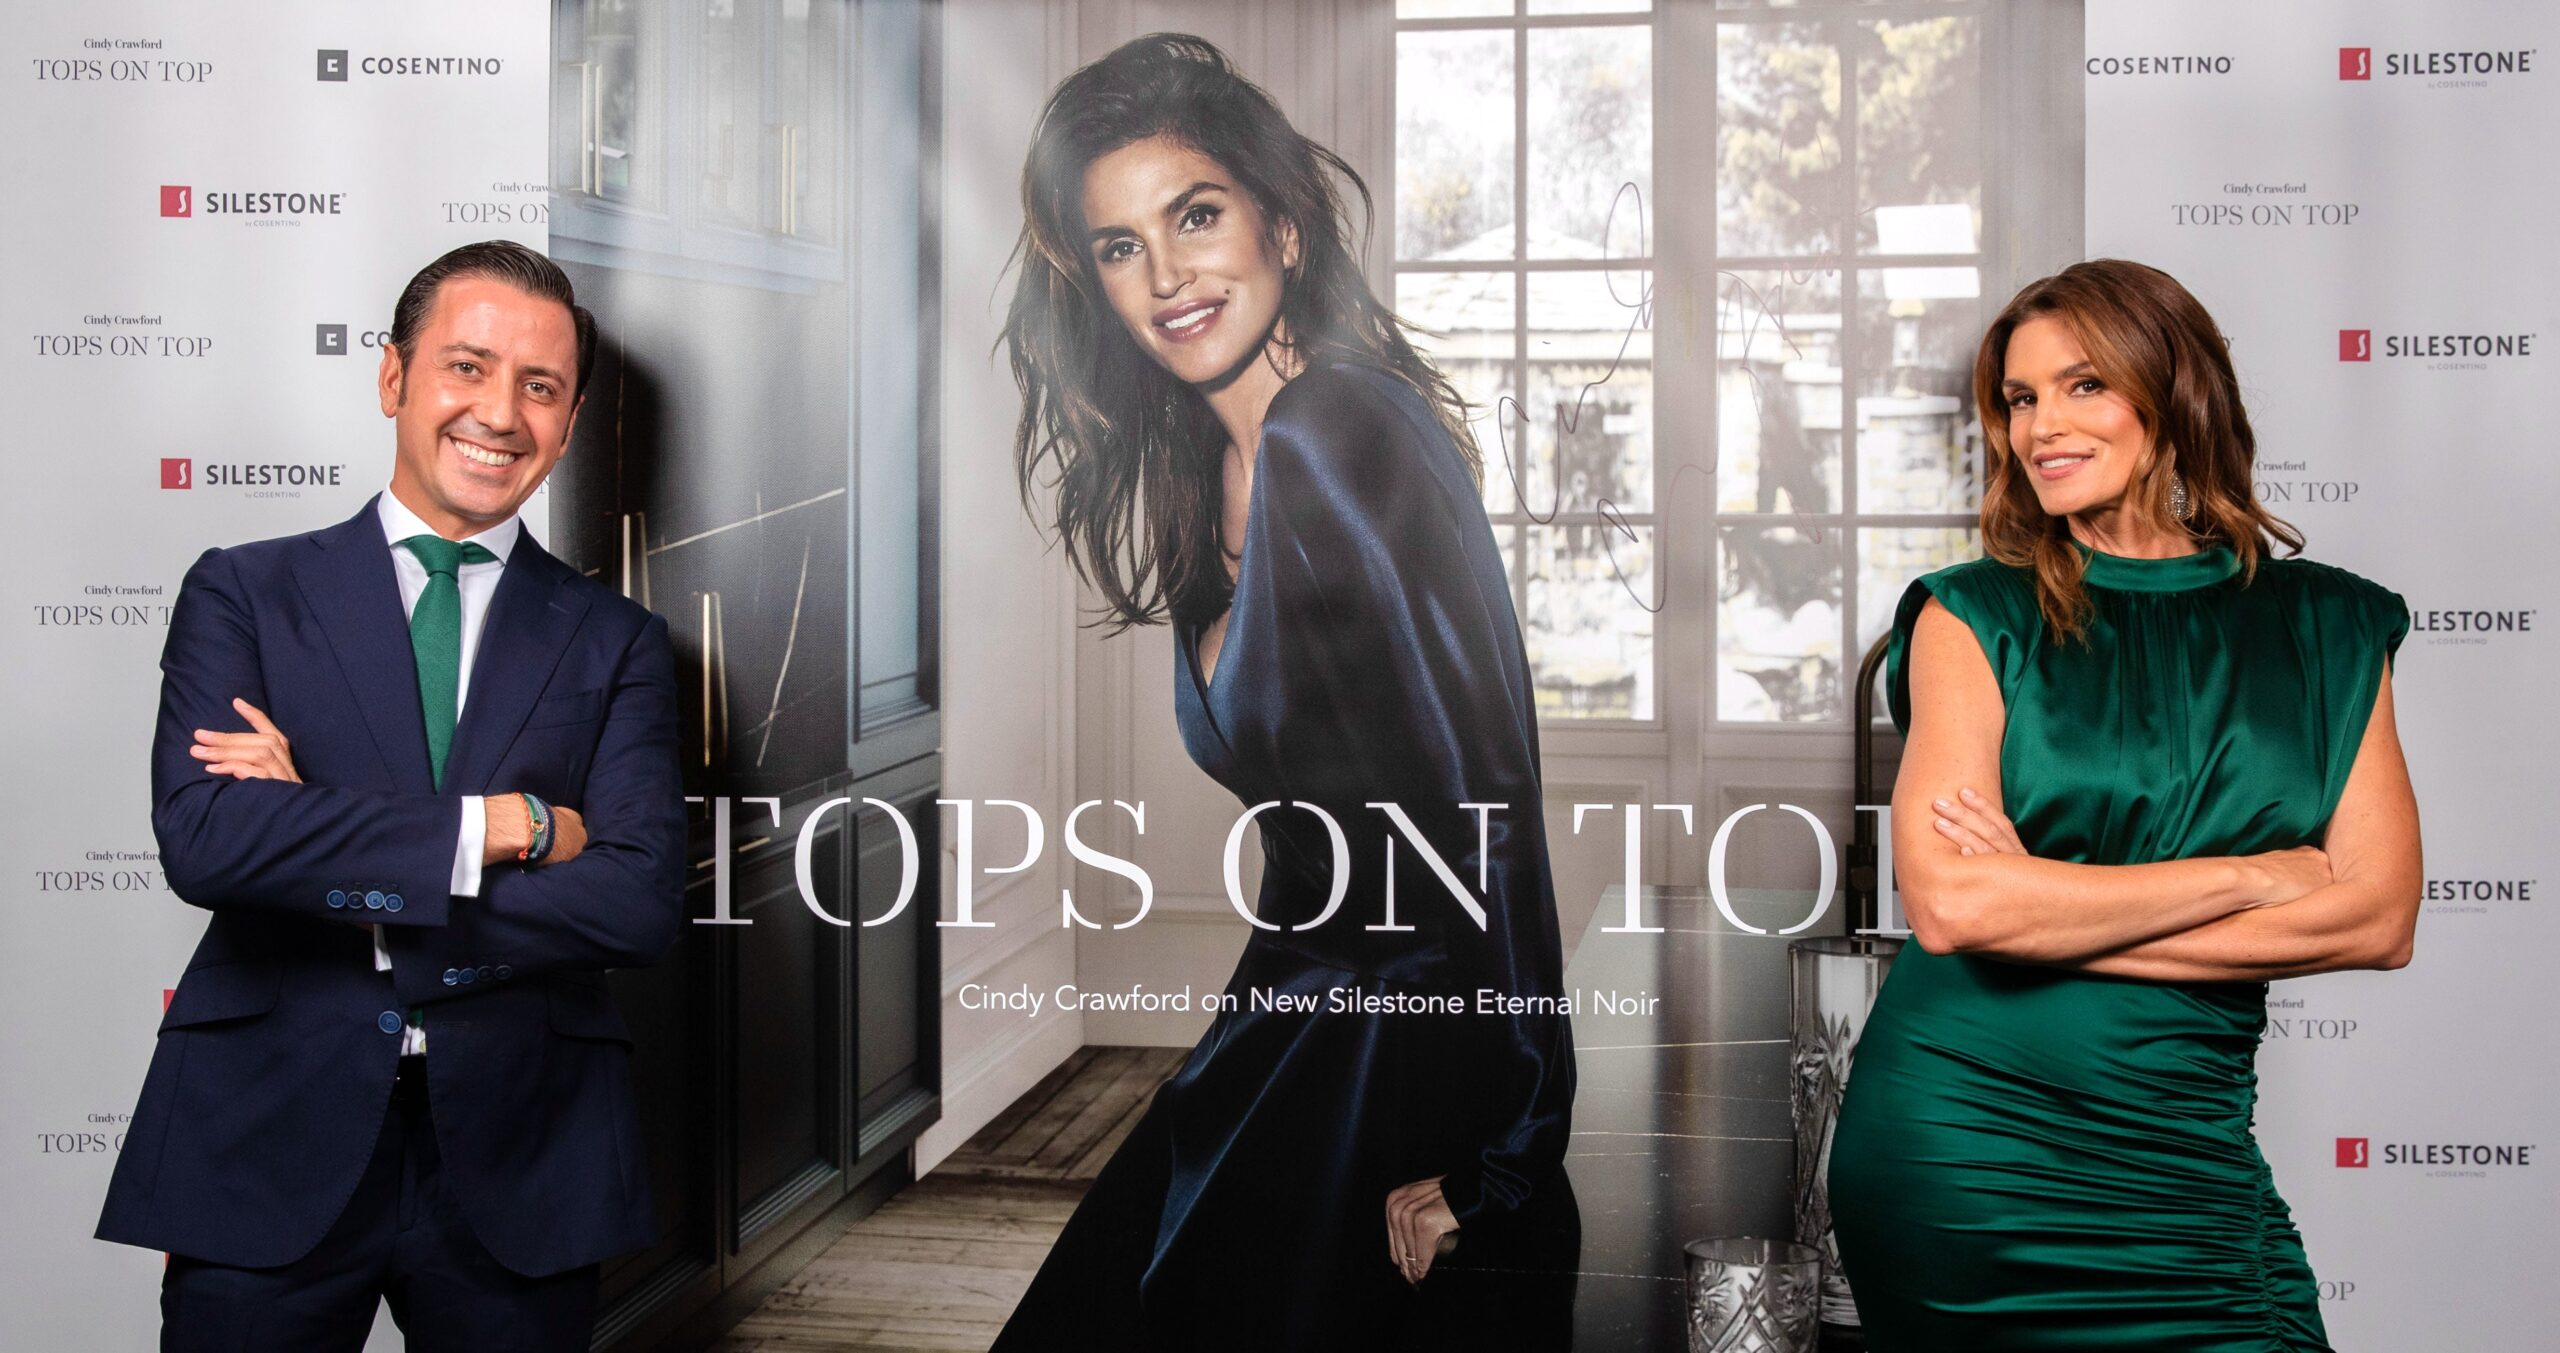 """Image of portada blog tops on top 2019 2 scaled in Silestone® Presents its New """"Tops on Top 2019"""" Campaign Featuring Cindy Crawford - Cosentino"""